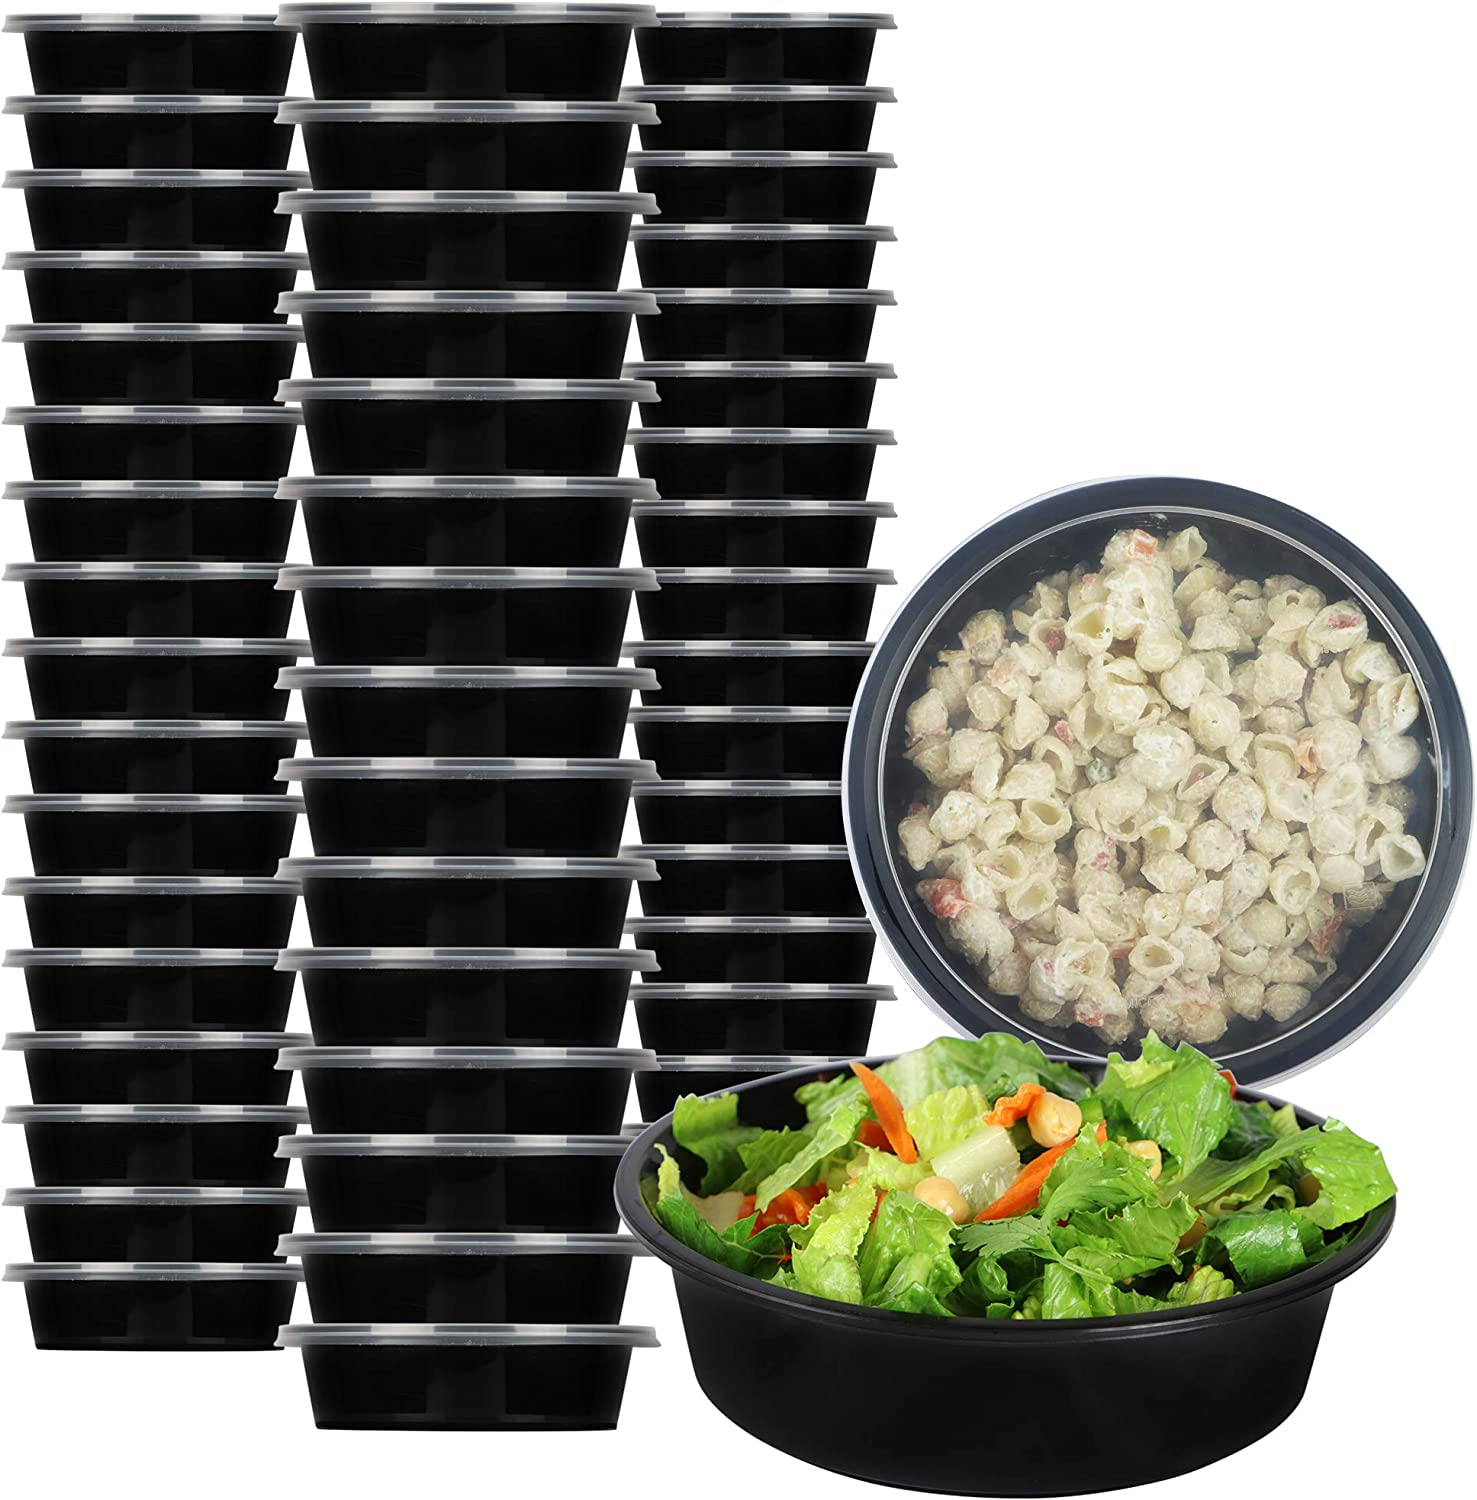 Vinotex Kitchen 25 Pack 29 oz Meal Prep single compartment round food containers. BPA-Free Bento Stackable Lunch Boxes, Microwave/Dishwasher/Freezer Safe, Portion Control, Value [25 Pack] R1100-25